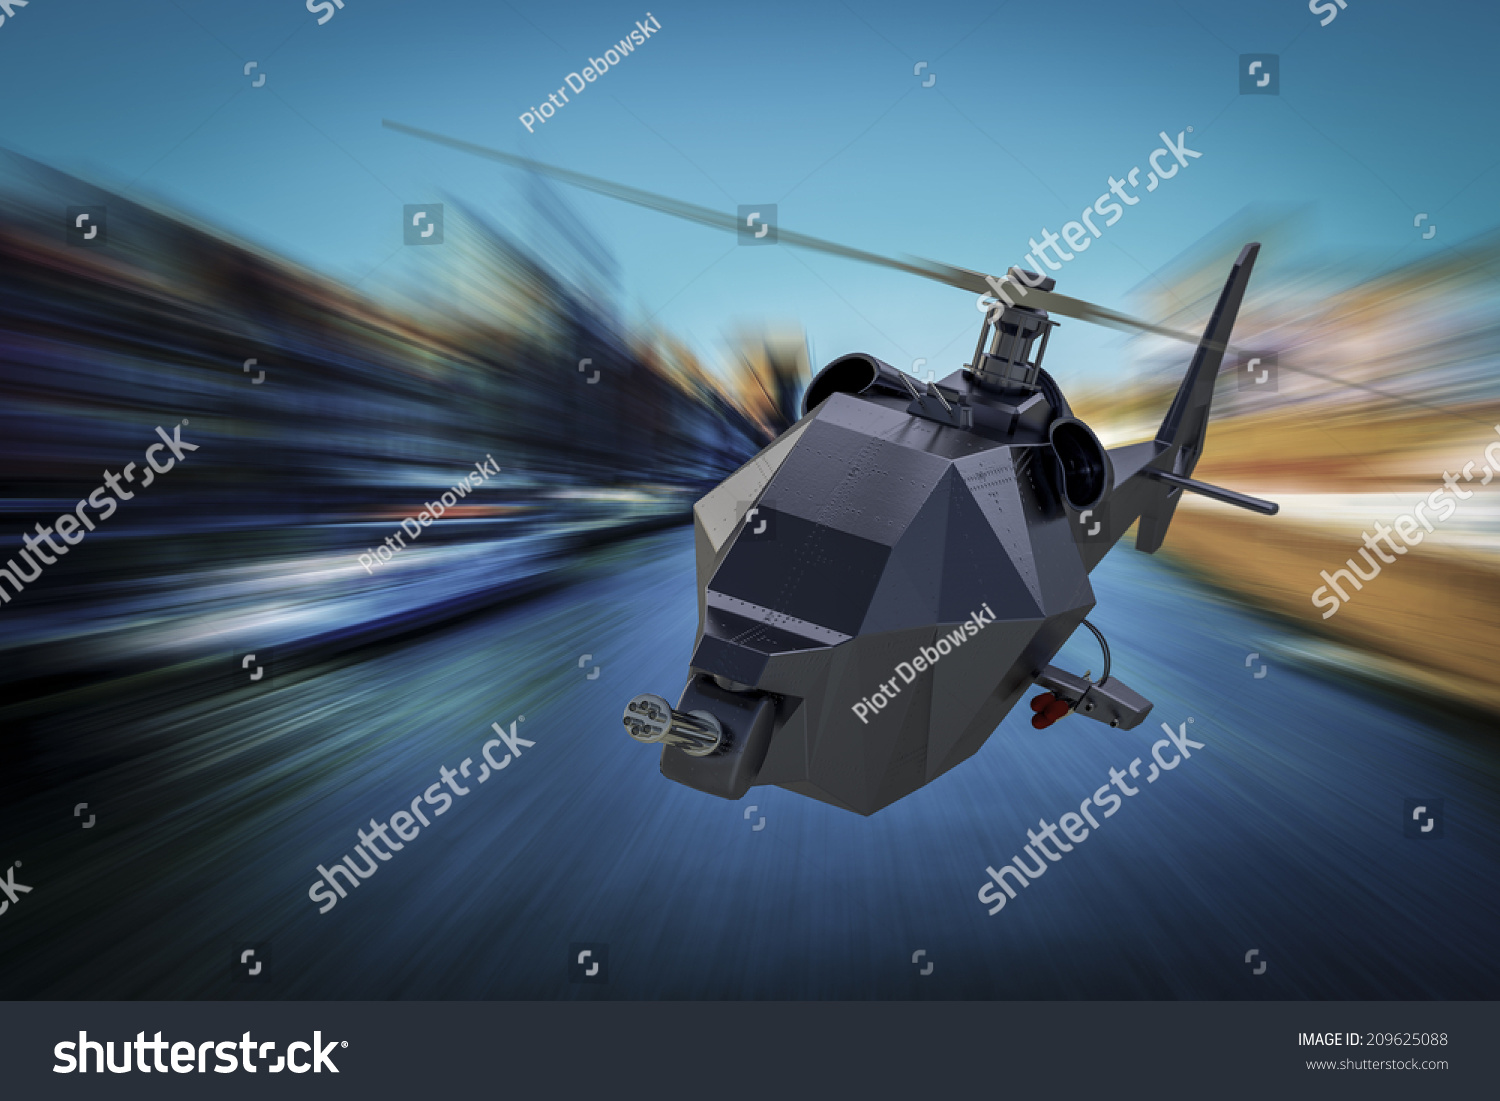 Military Drone Helicopter Uav Flight Stock Illustration 209625088